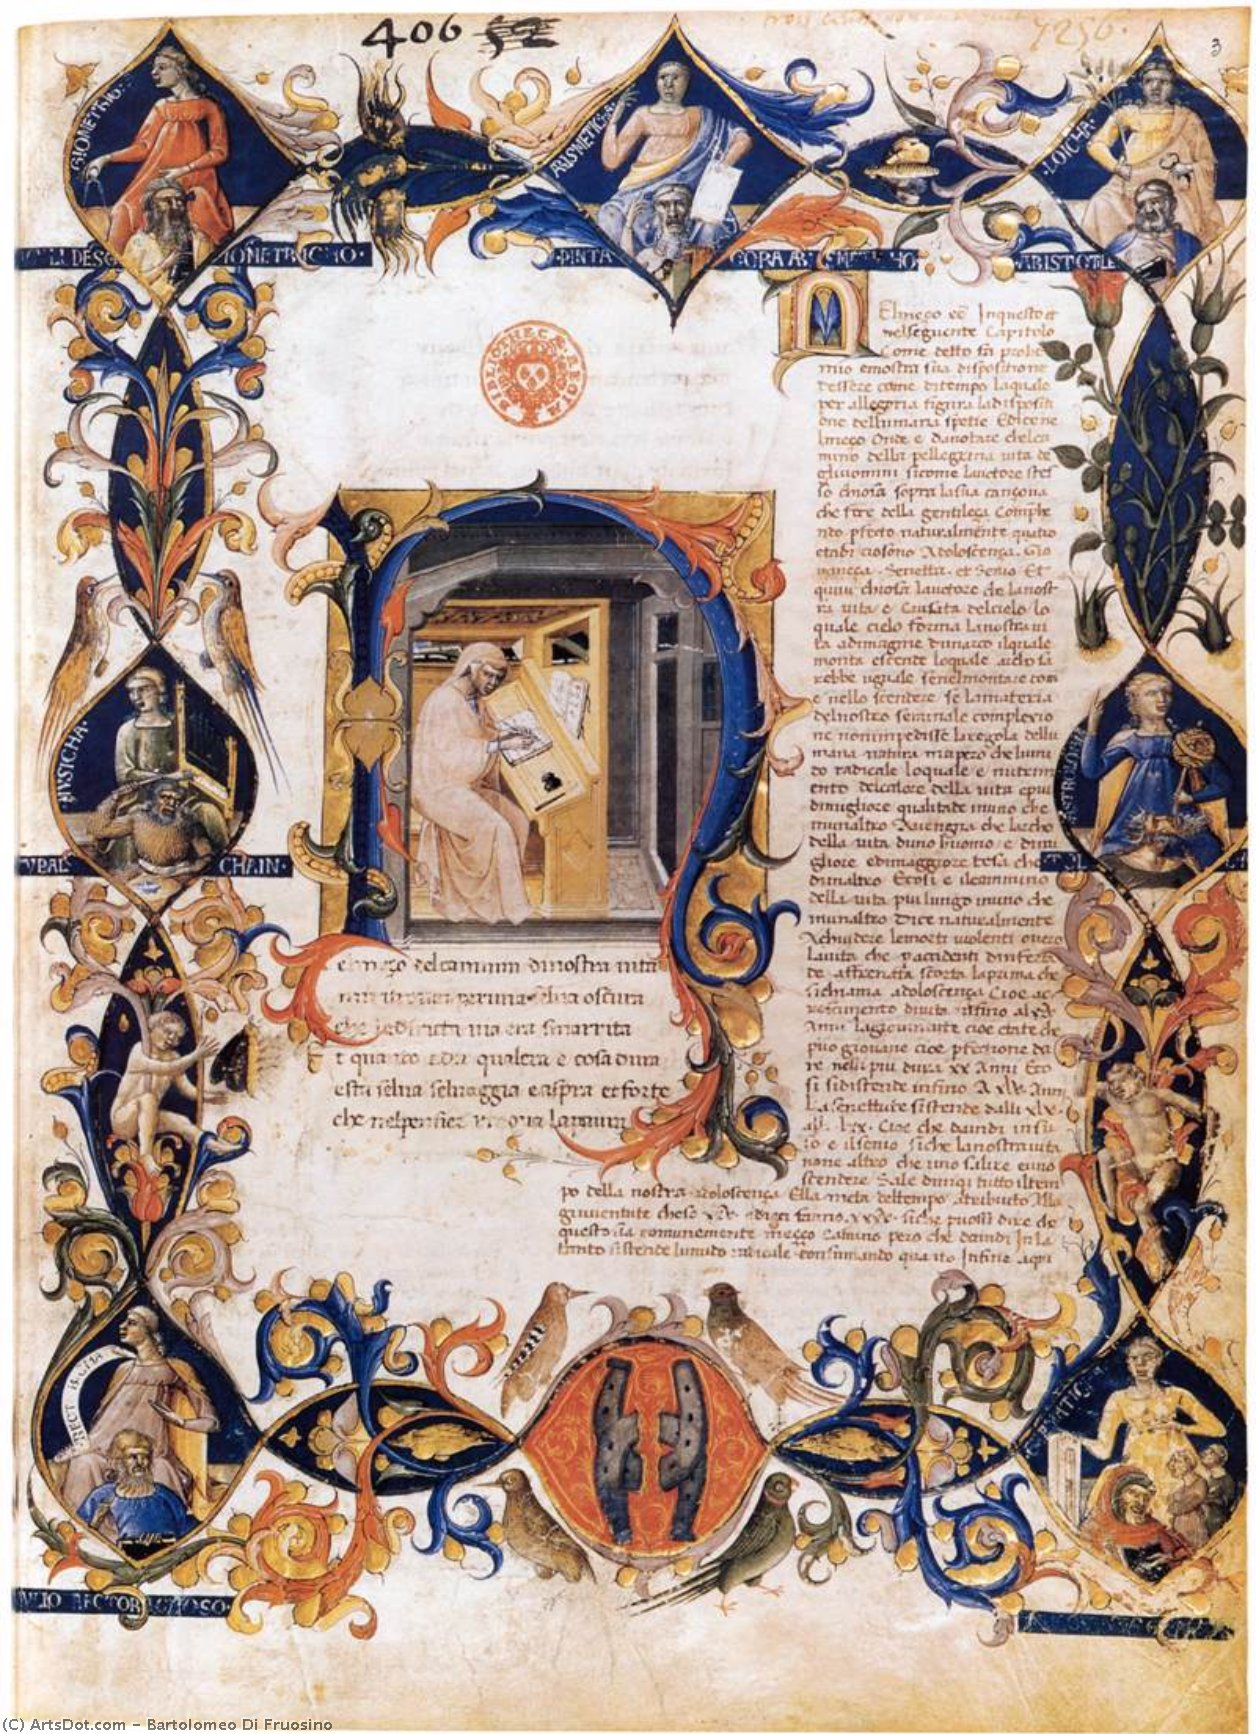 Wikioo.org - The Encyclopedia of Fine Arts - Painting, Artwork by Bartolomeo Di Fruosino - Inferno, from the Divine Comedy by Dante (Folio 3v)